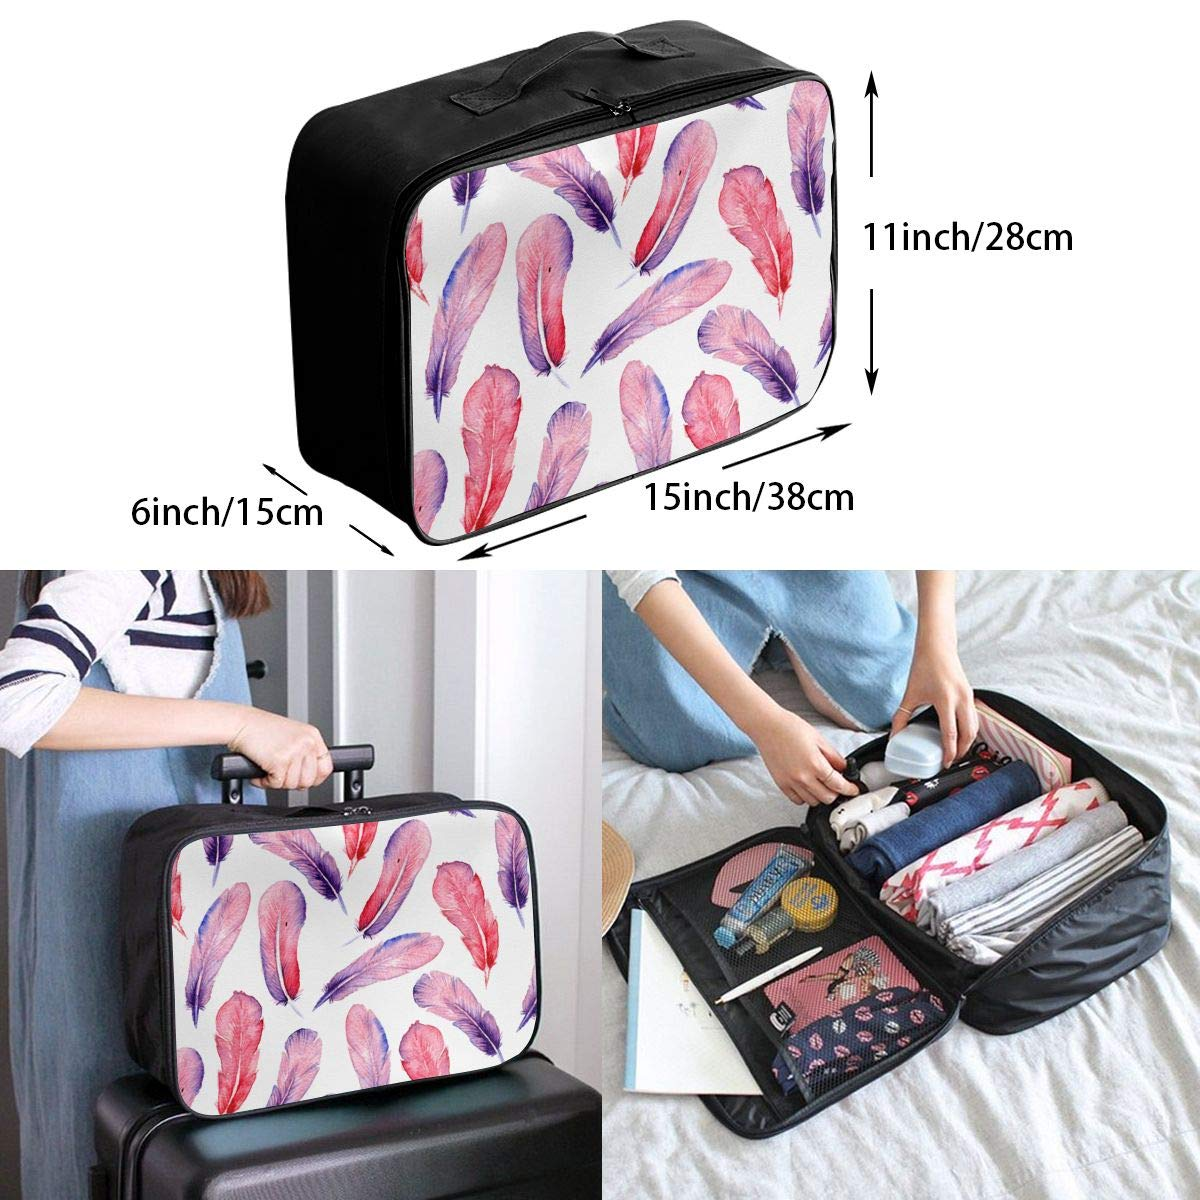 Travel Luggage Duffle Bag Lightweight Portable Handbag Watercolor Feathers Print Large Capacity Waterproof Foldable Storage Tote